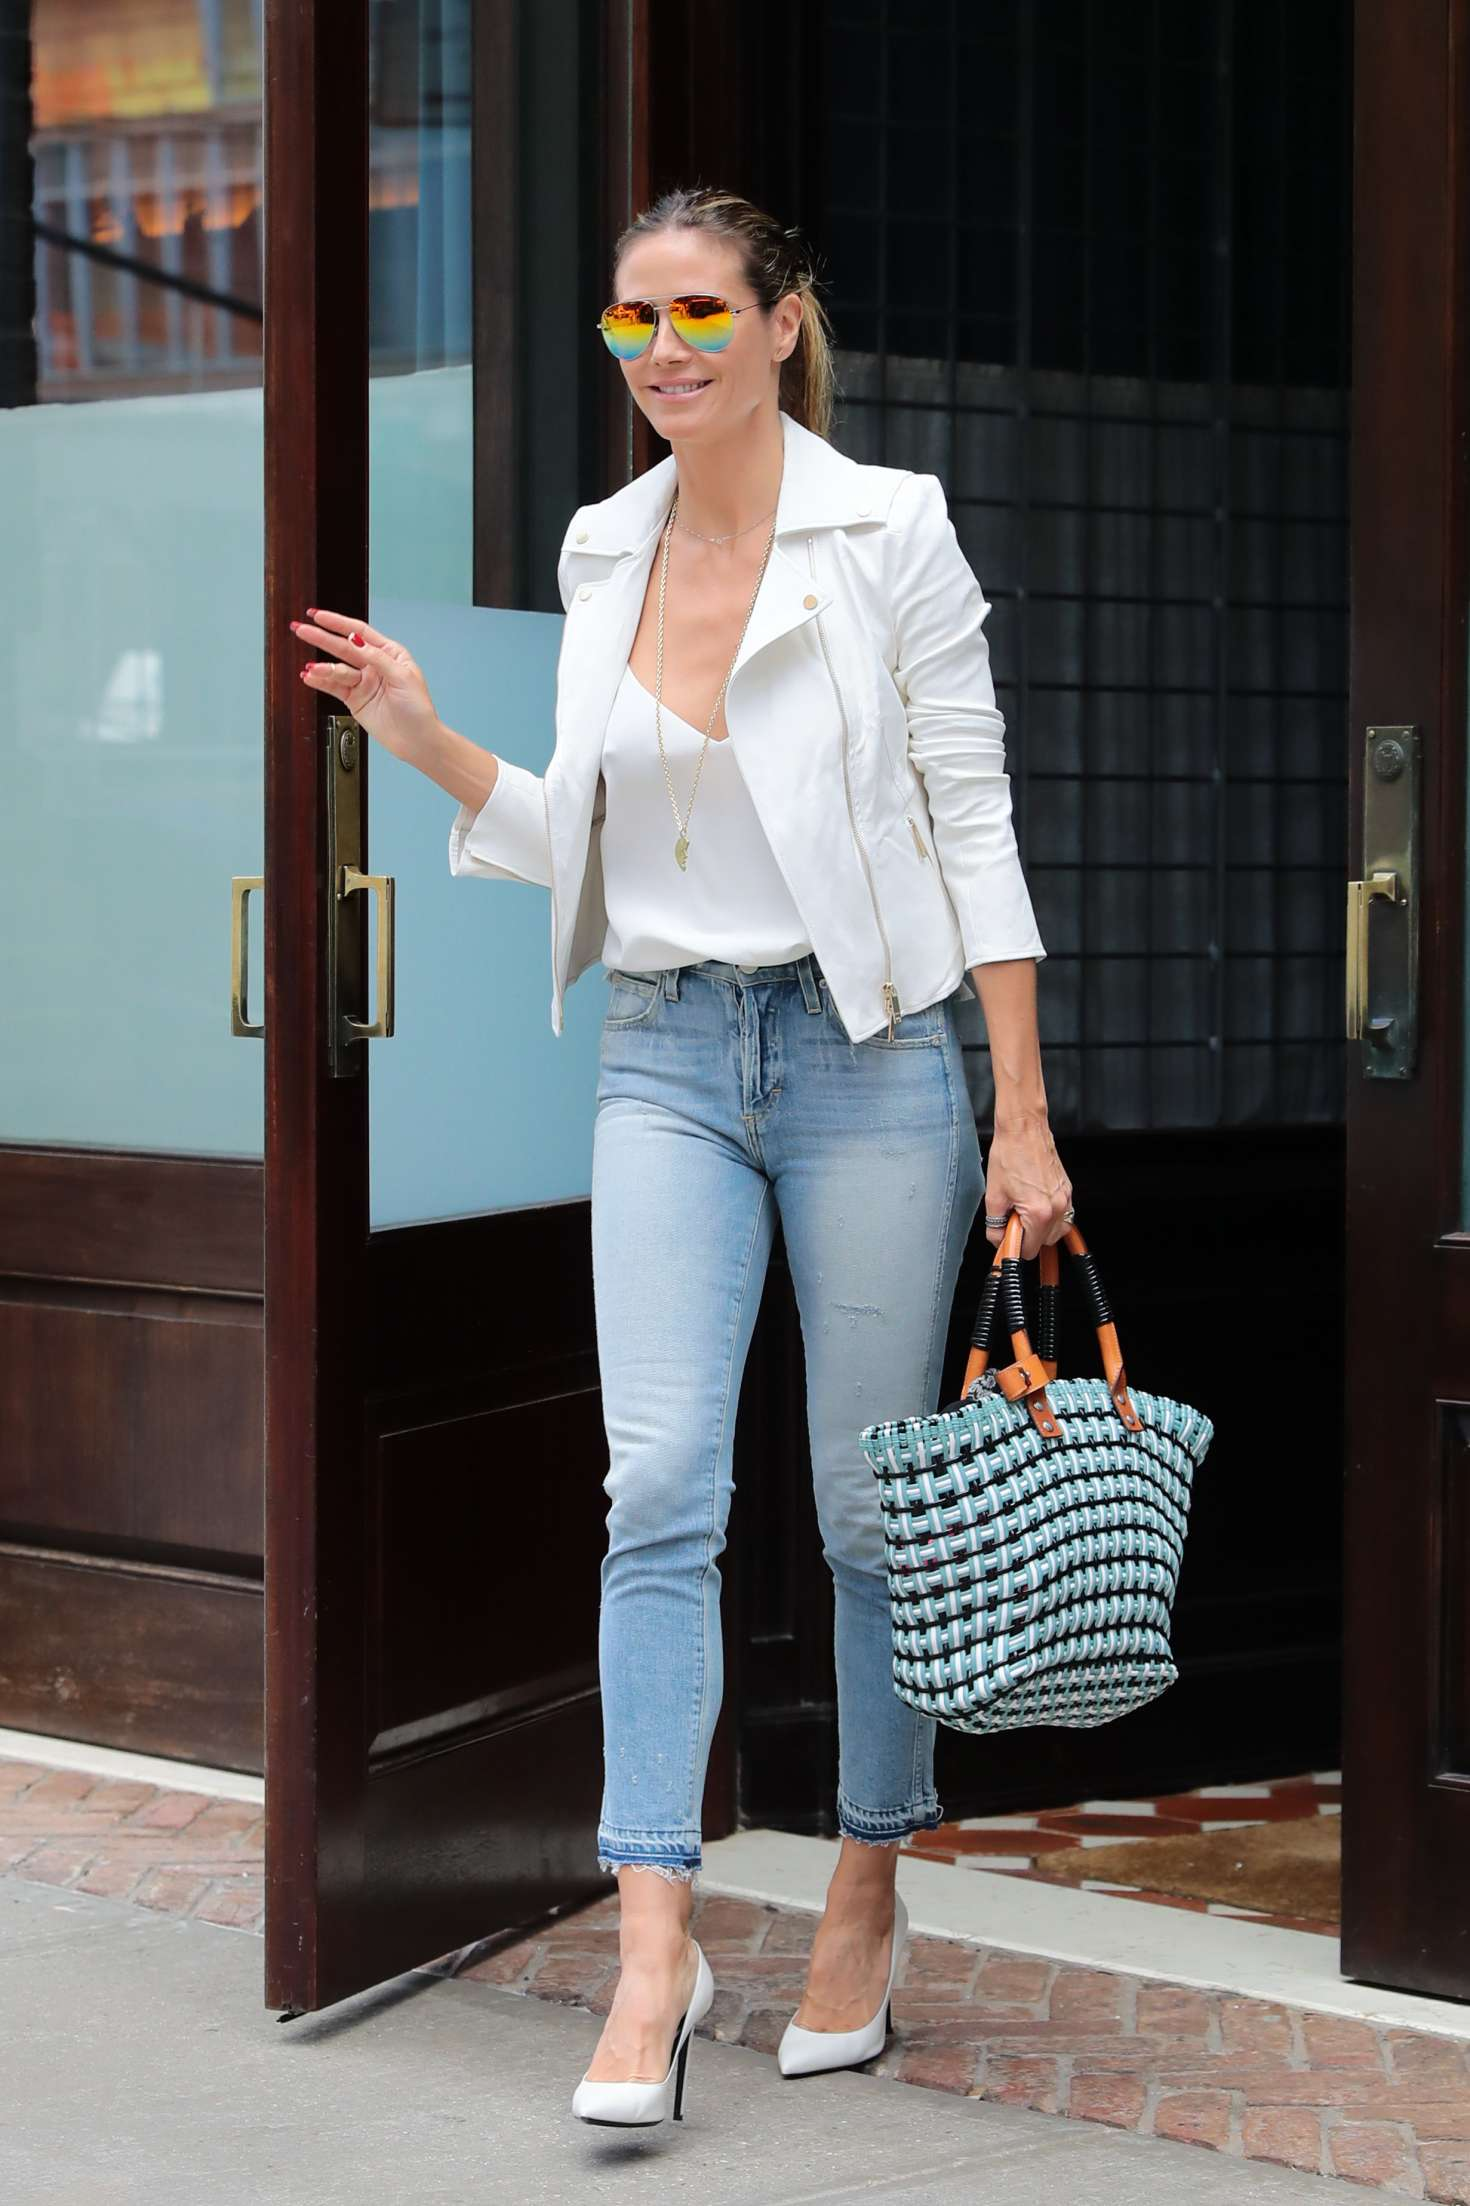 Heidi Klum 2017 : Heidi Klum Out and about in NY -18